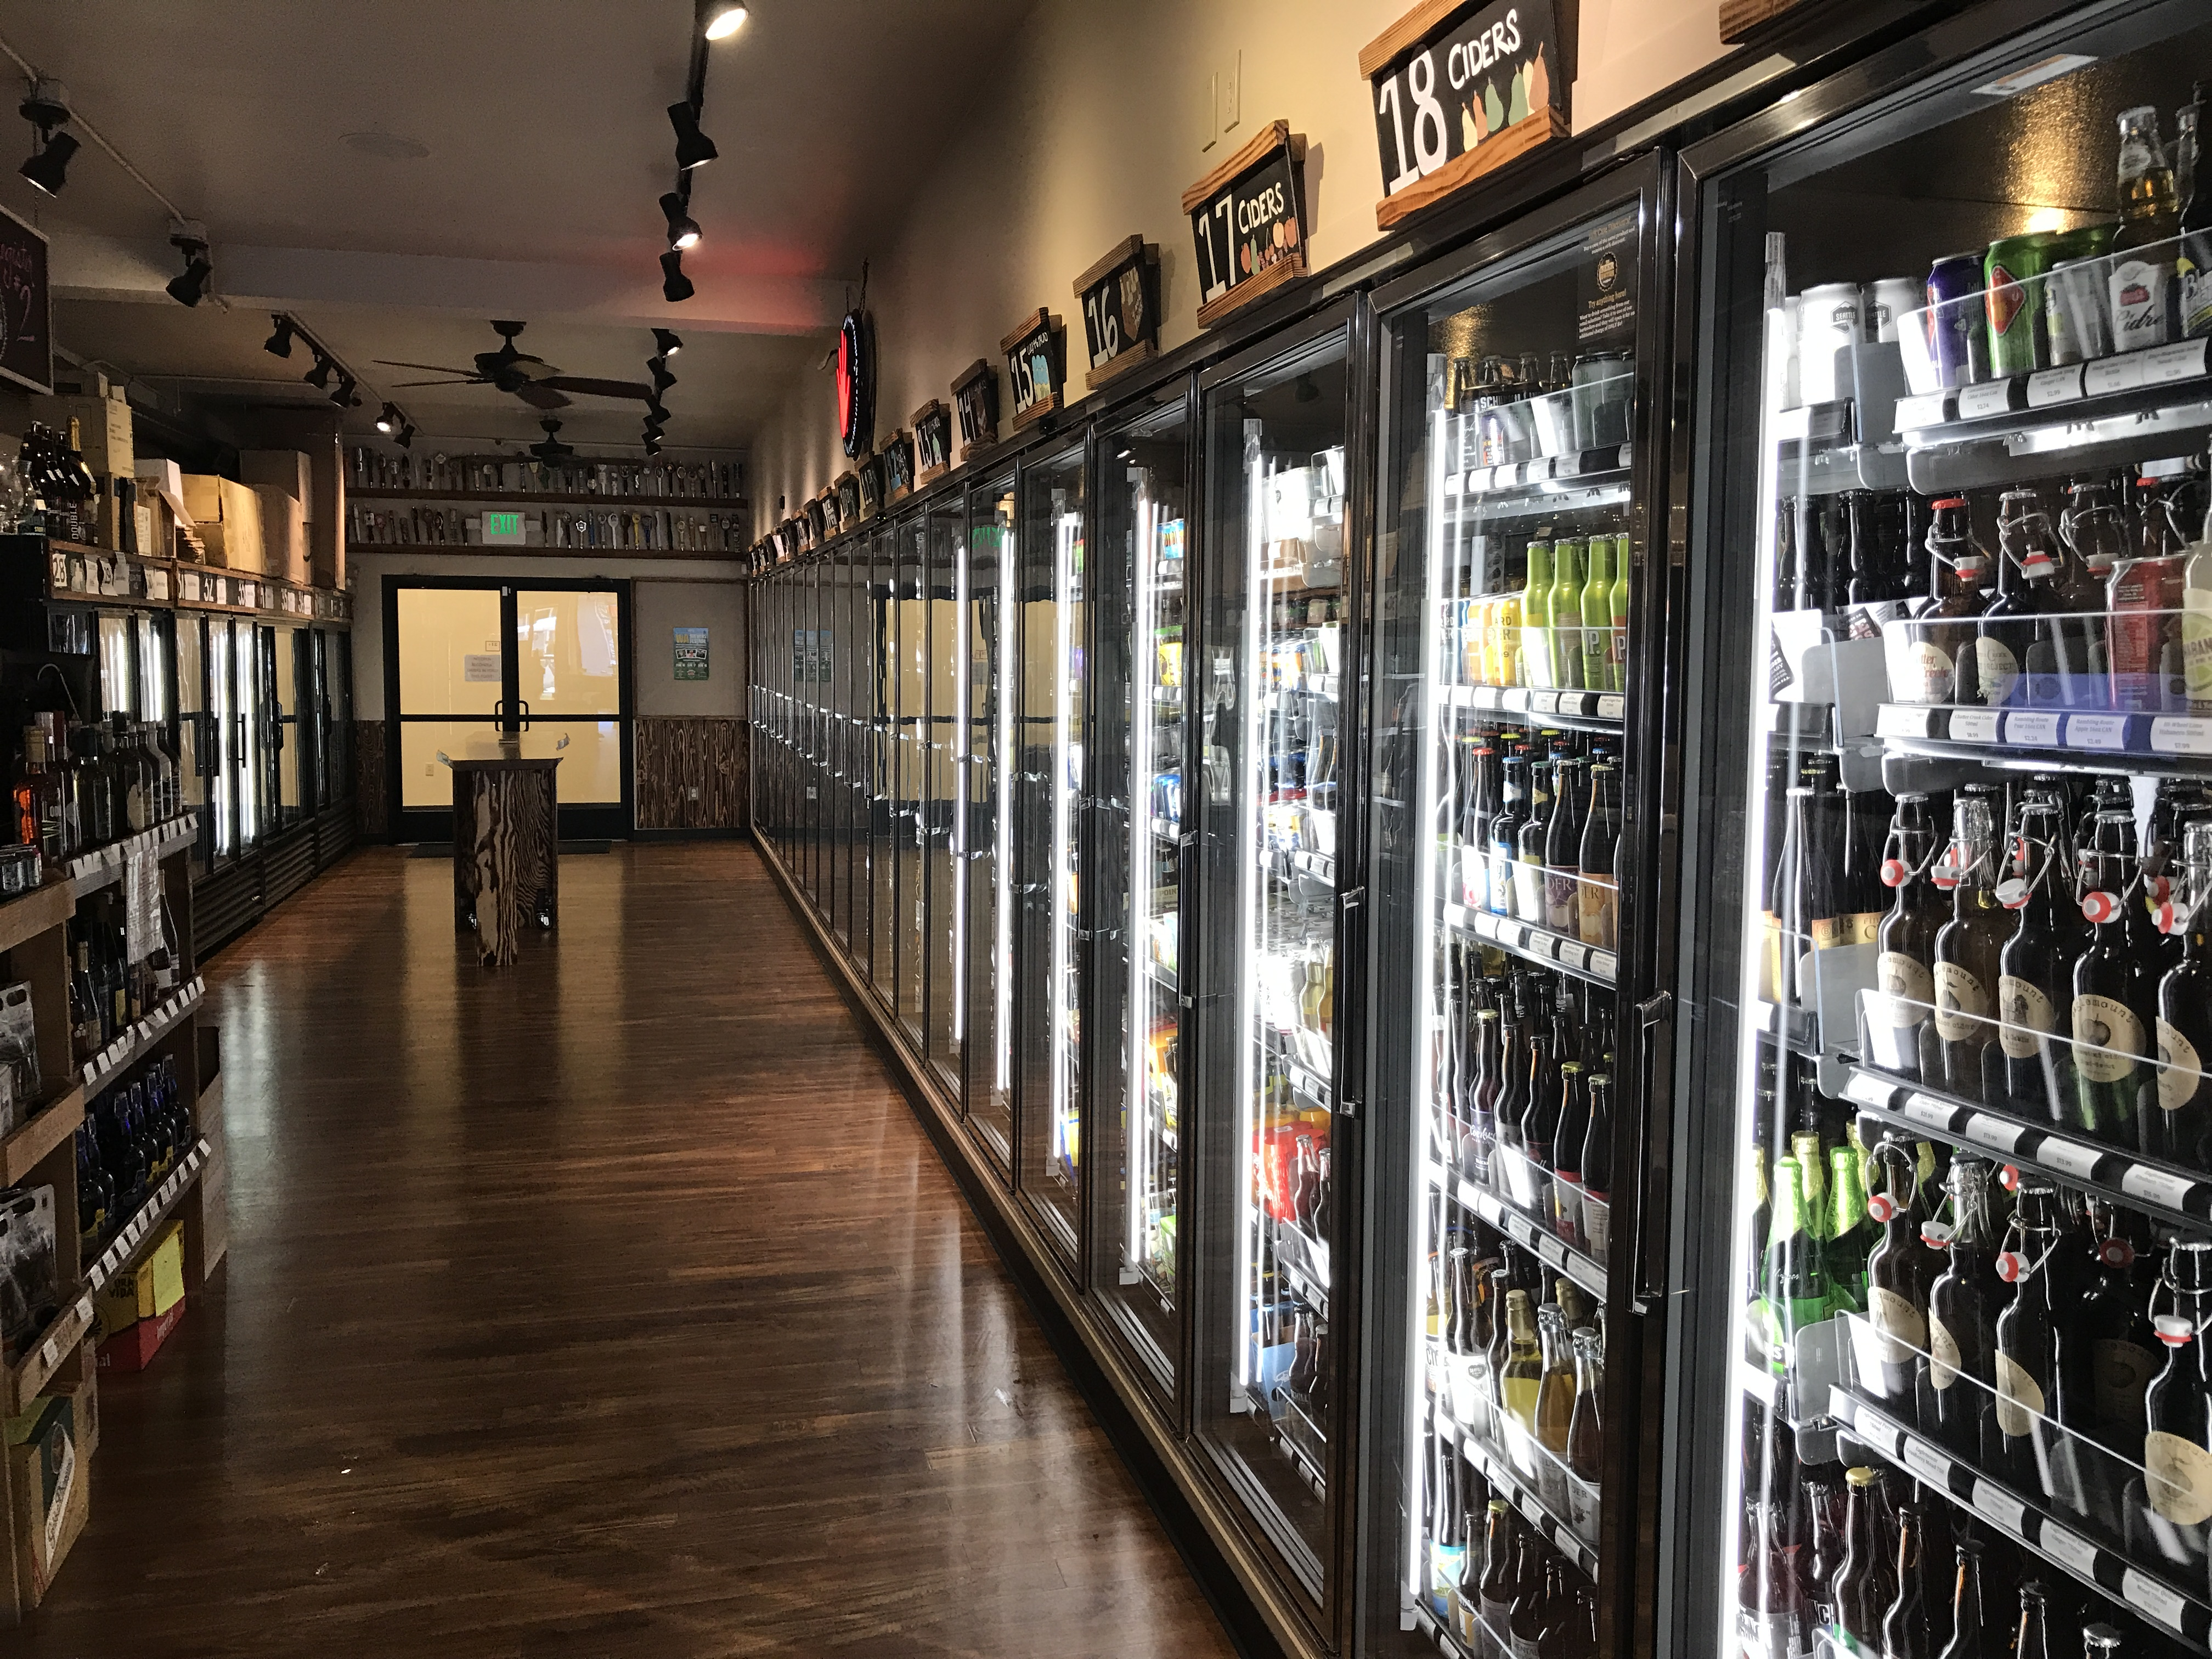 The Beer Junction - Where great beer meets West Seattle